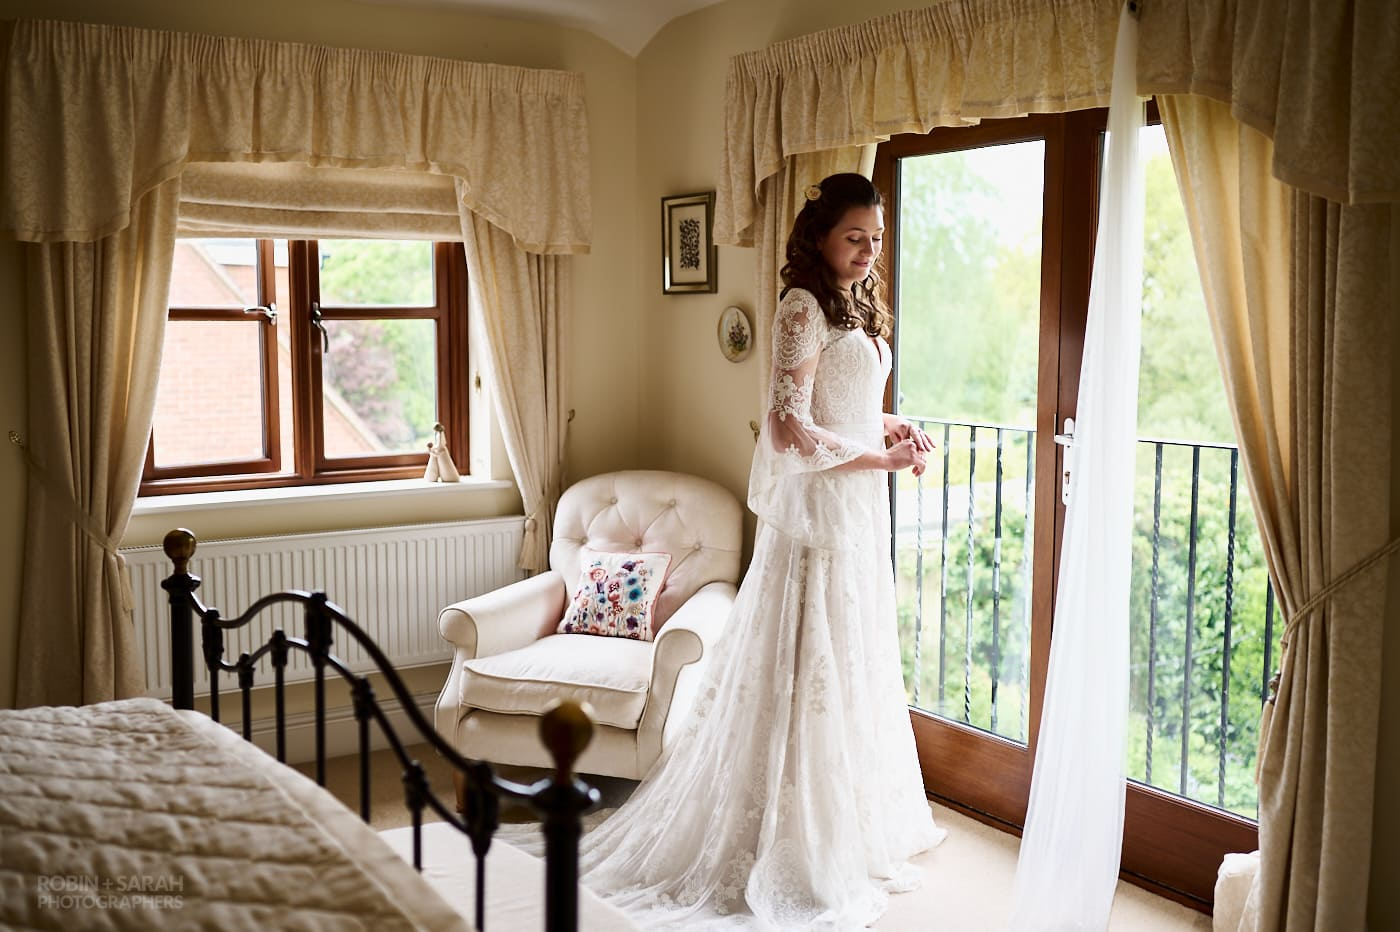 Portrait of beautiful bride in bedroom wearing a long wedding dress with lace sleeves